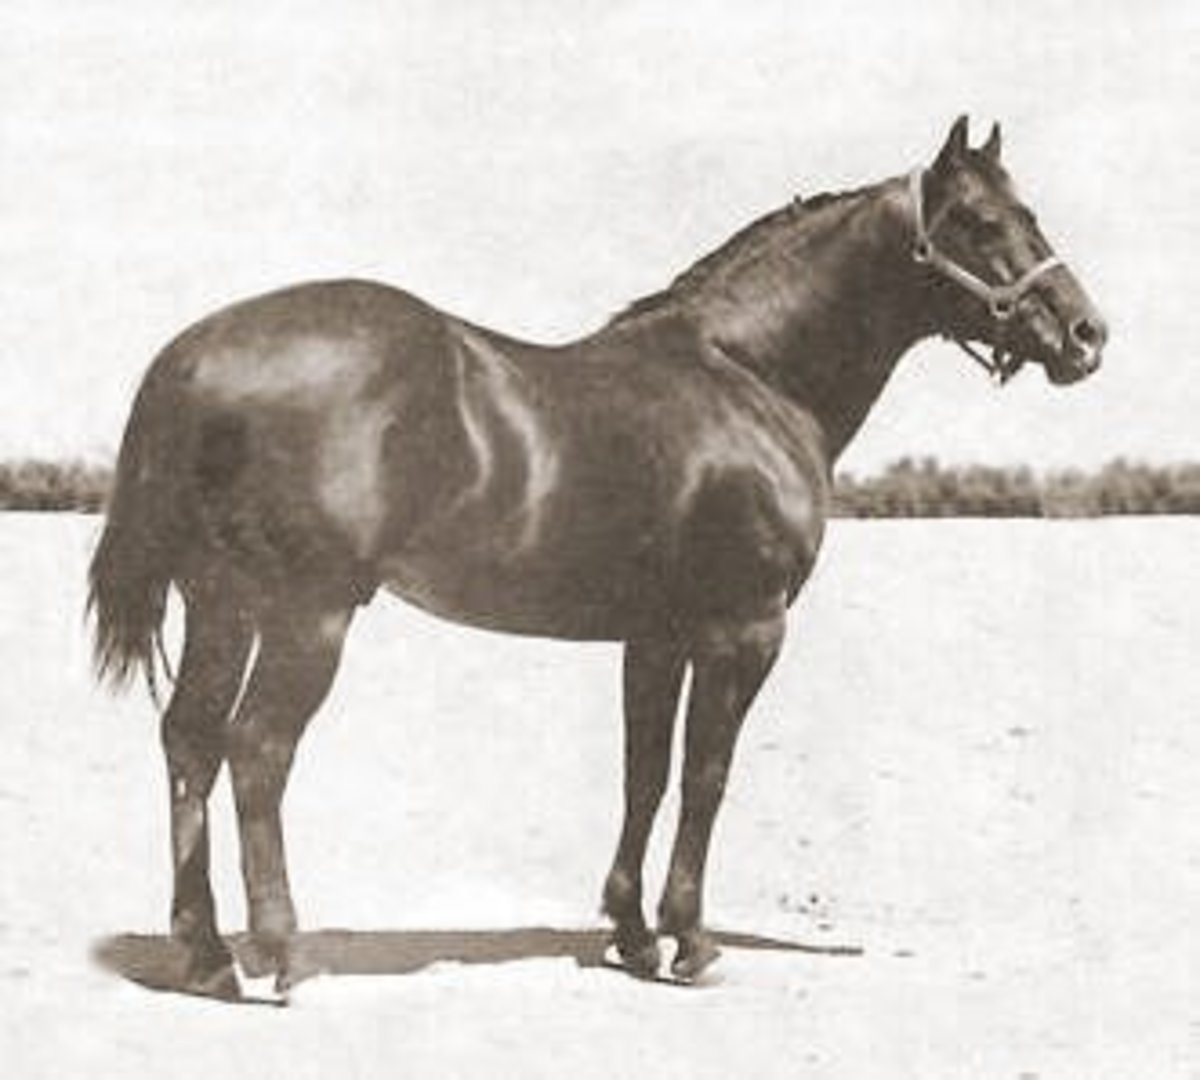 King P-234, one of the most influential foundation sires in the American Quarter Horse.